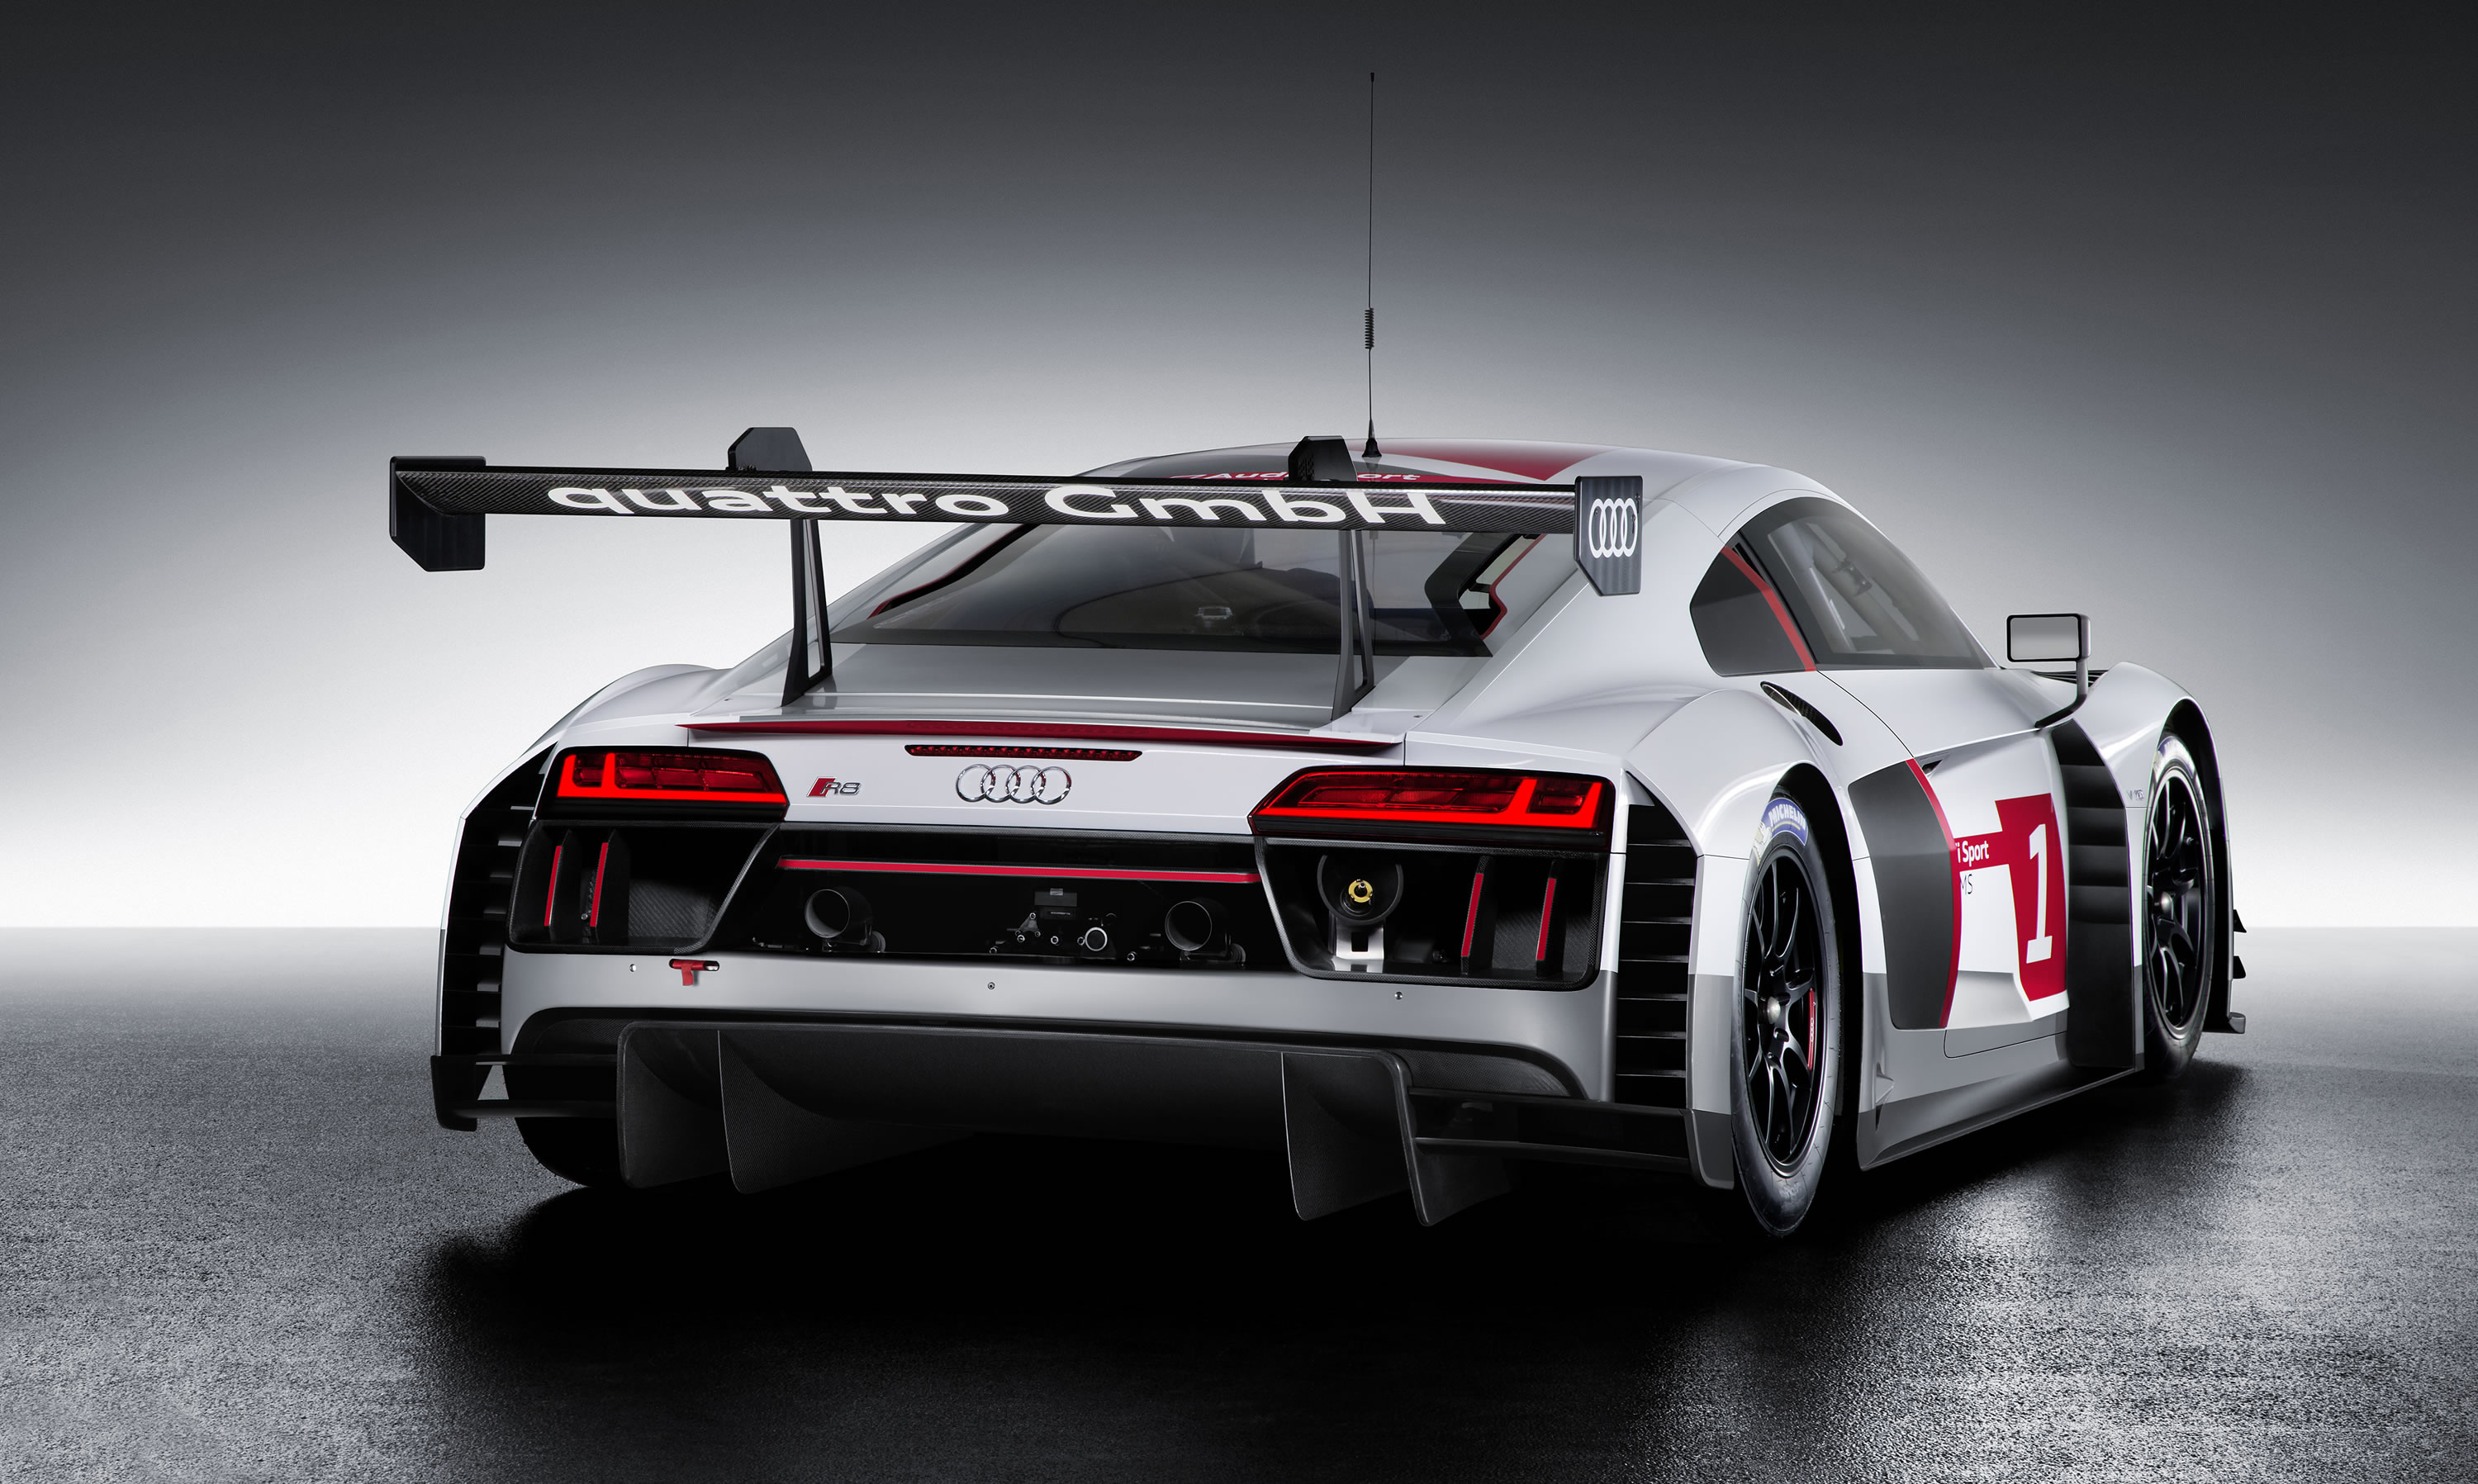 2015 Audi R8 Lms Race Car Photos Specs And Review Rs